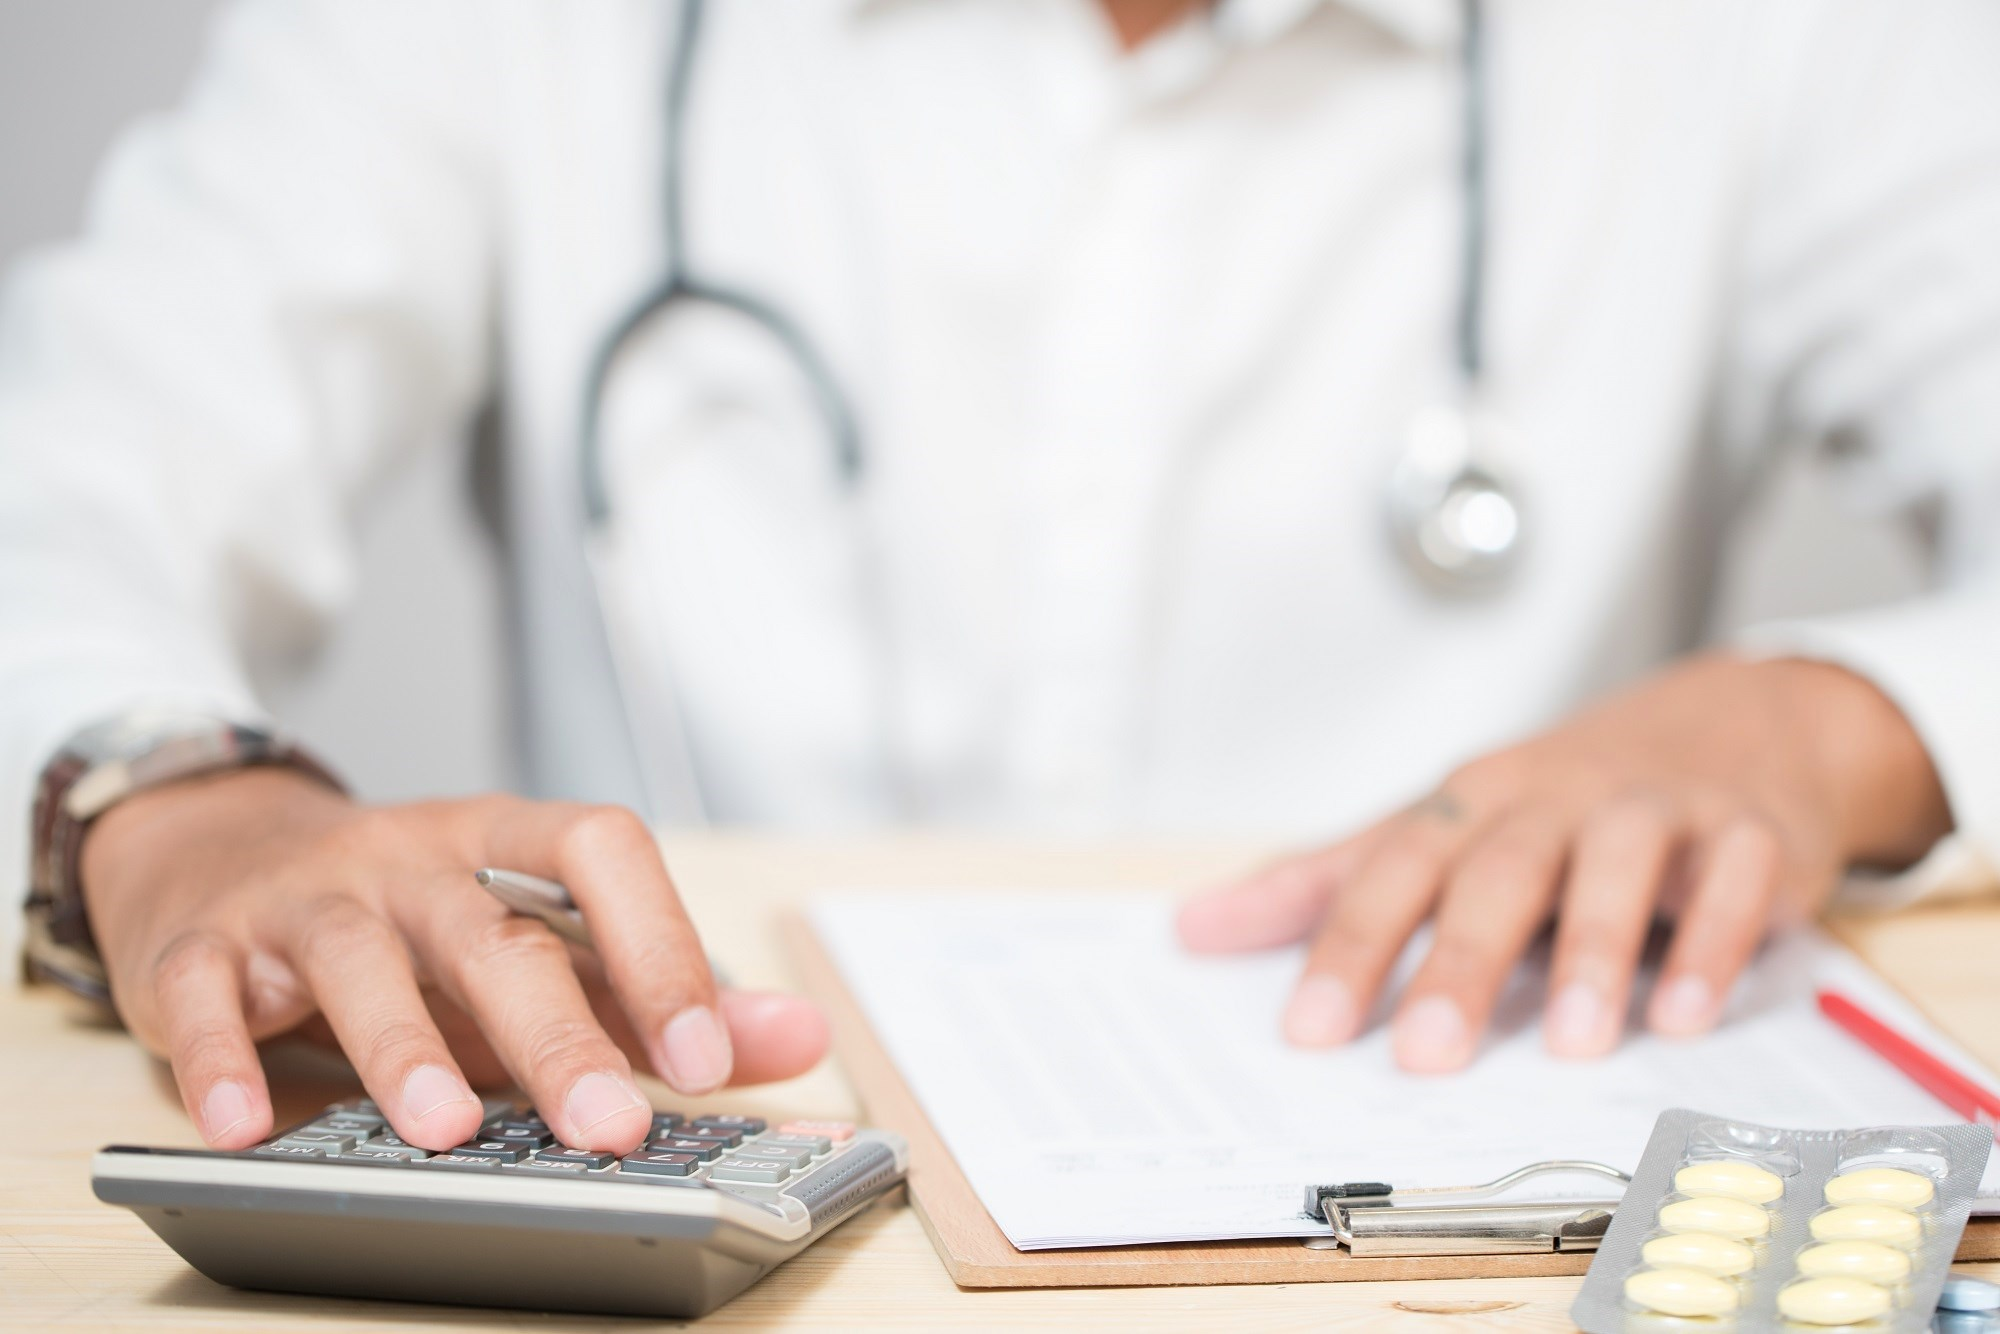 Insurers May Be Underpaying Physicians